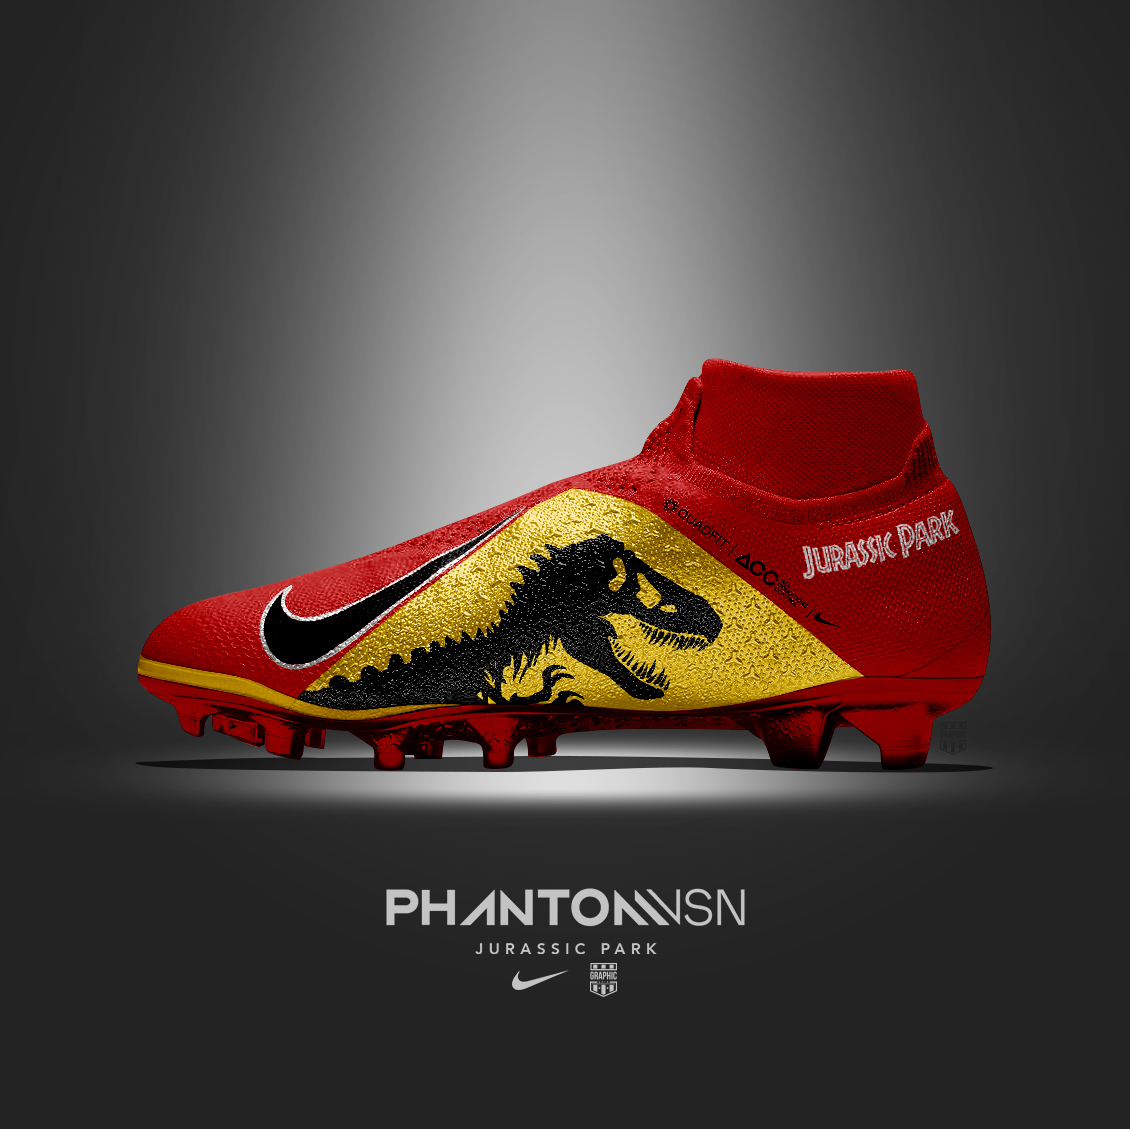 nike-phantom-vision-7eme-art-graphic-united-jurassic-park